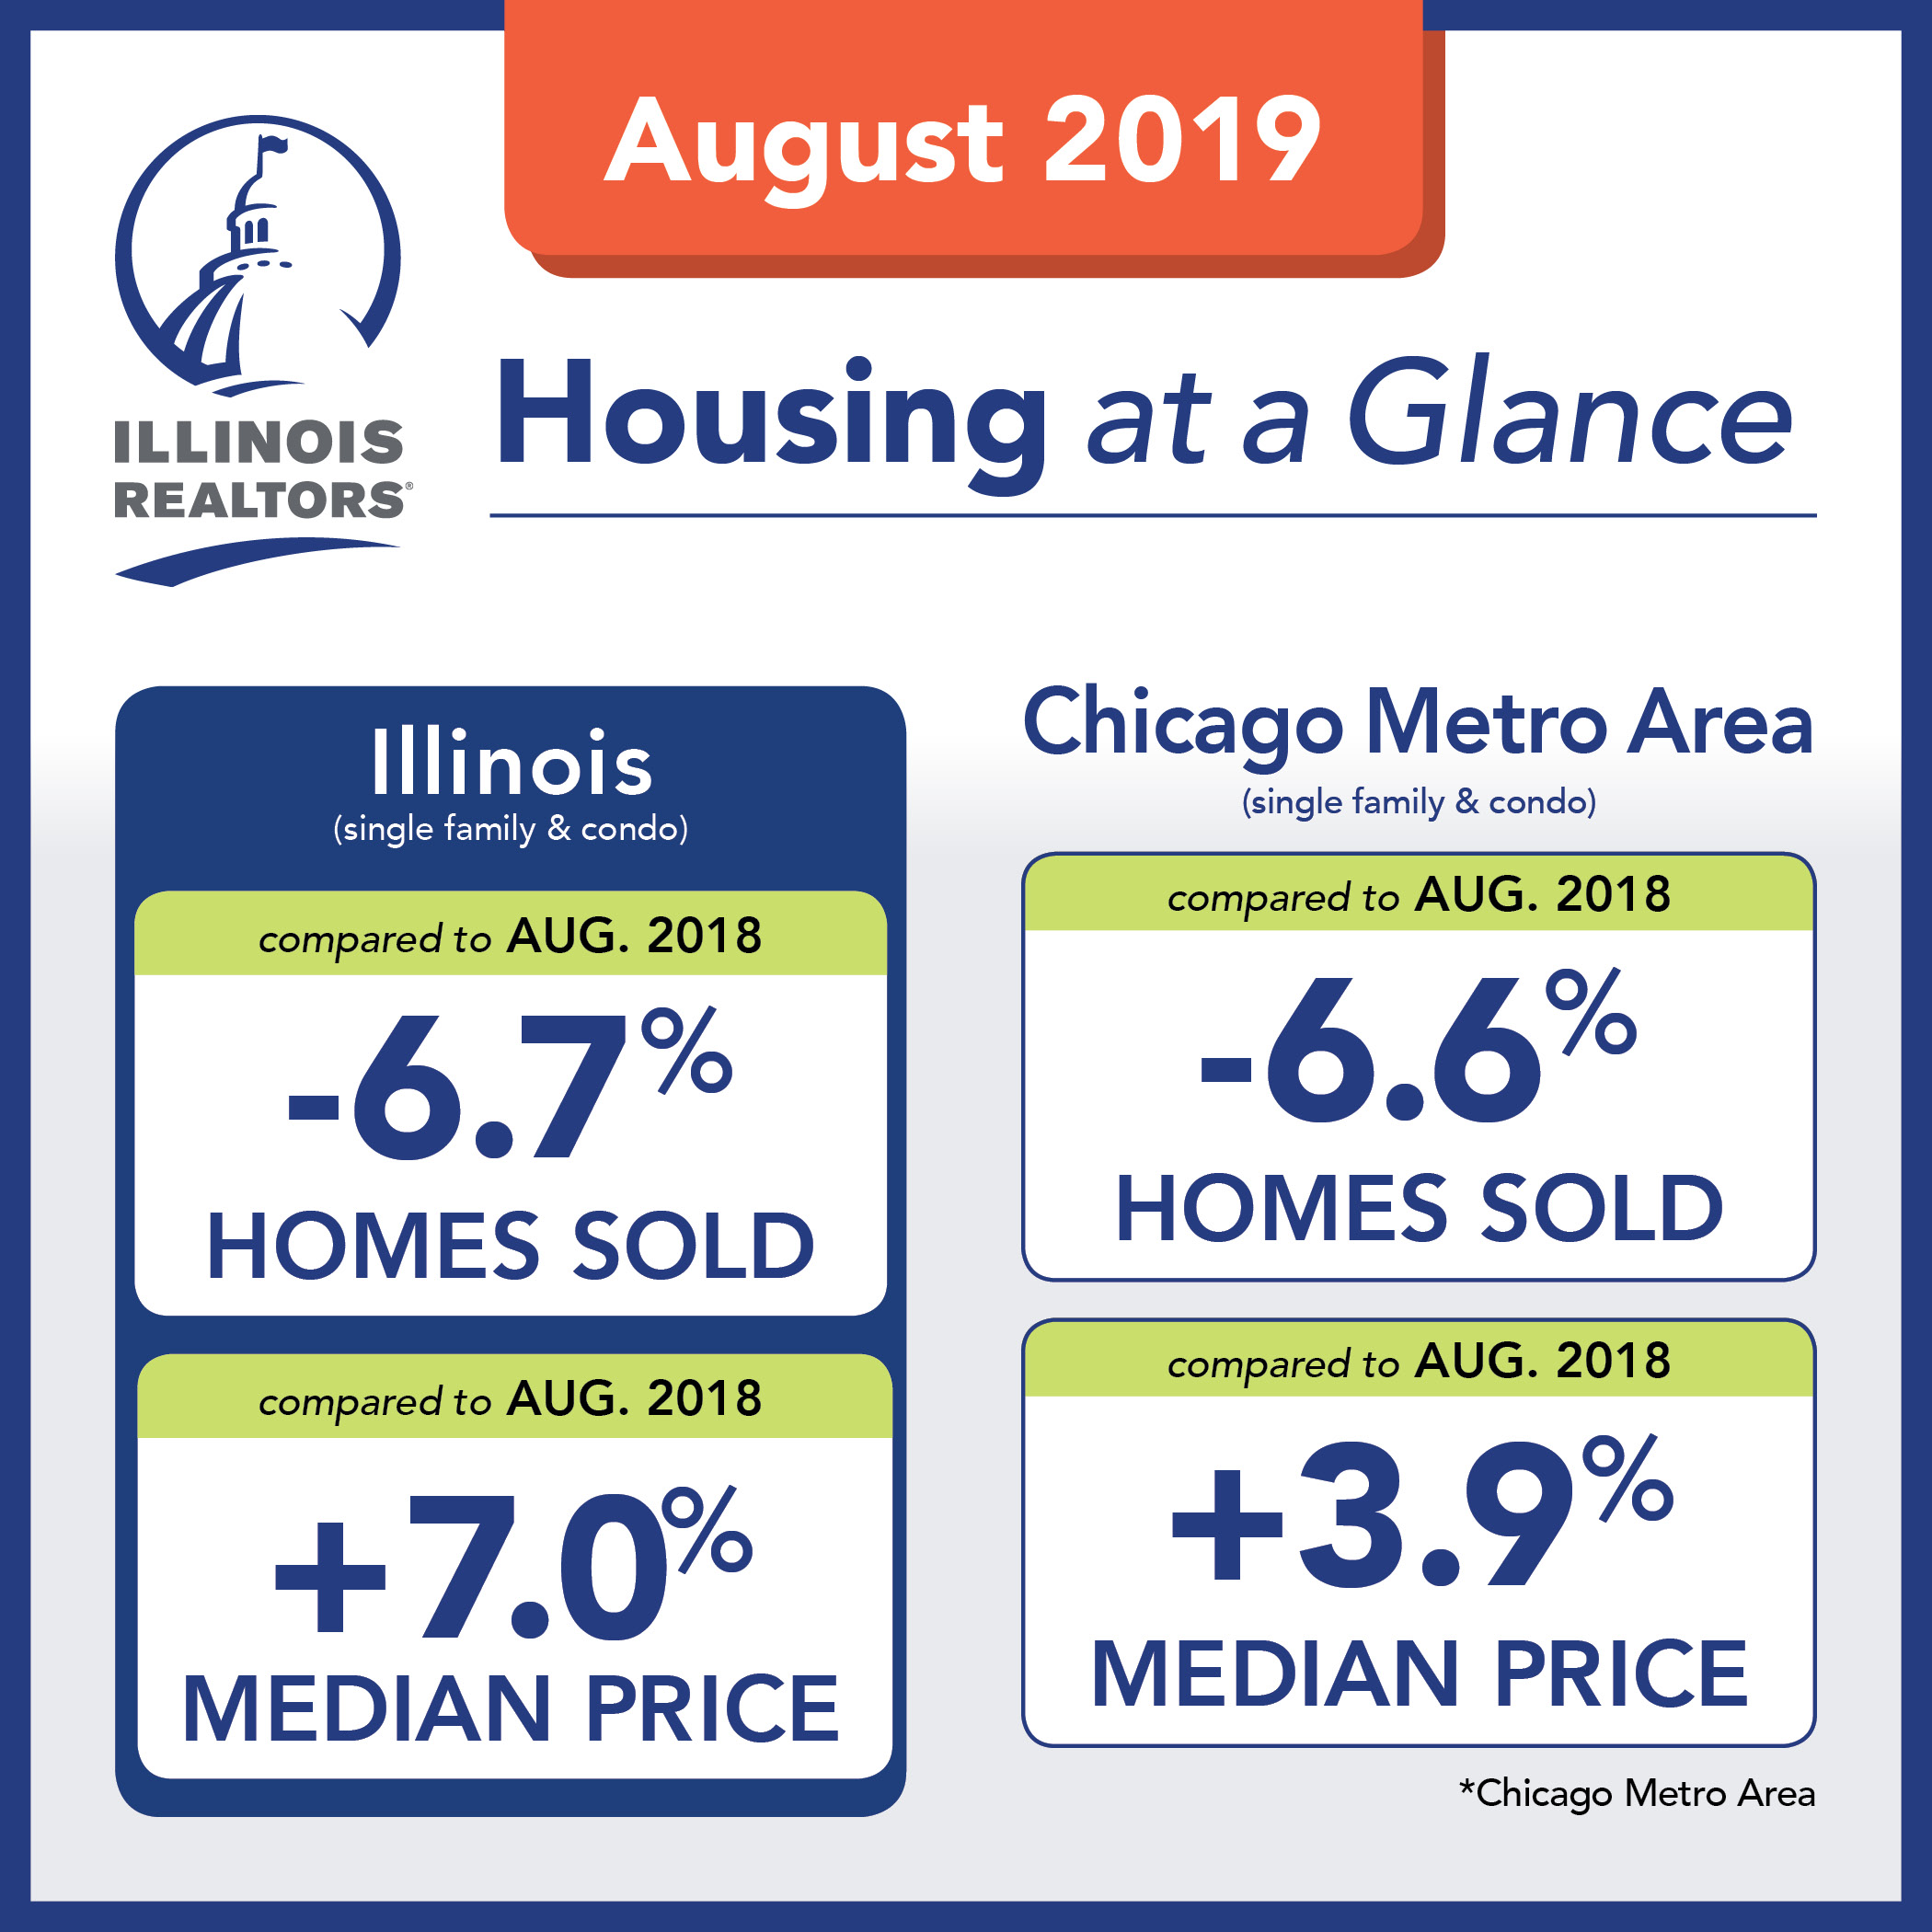 August 2019 Housing at a Glance graphic